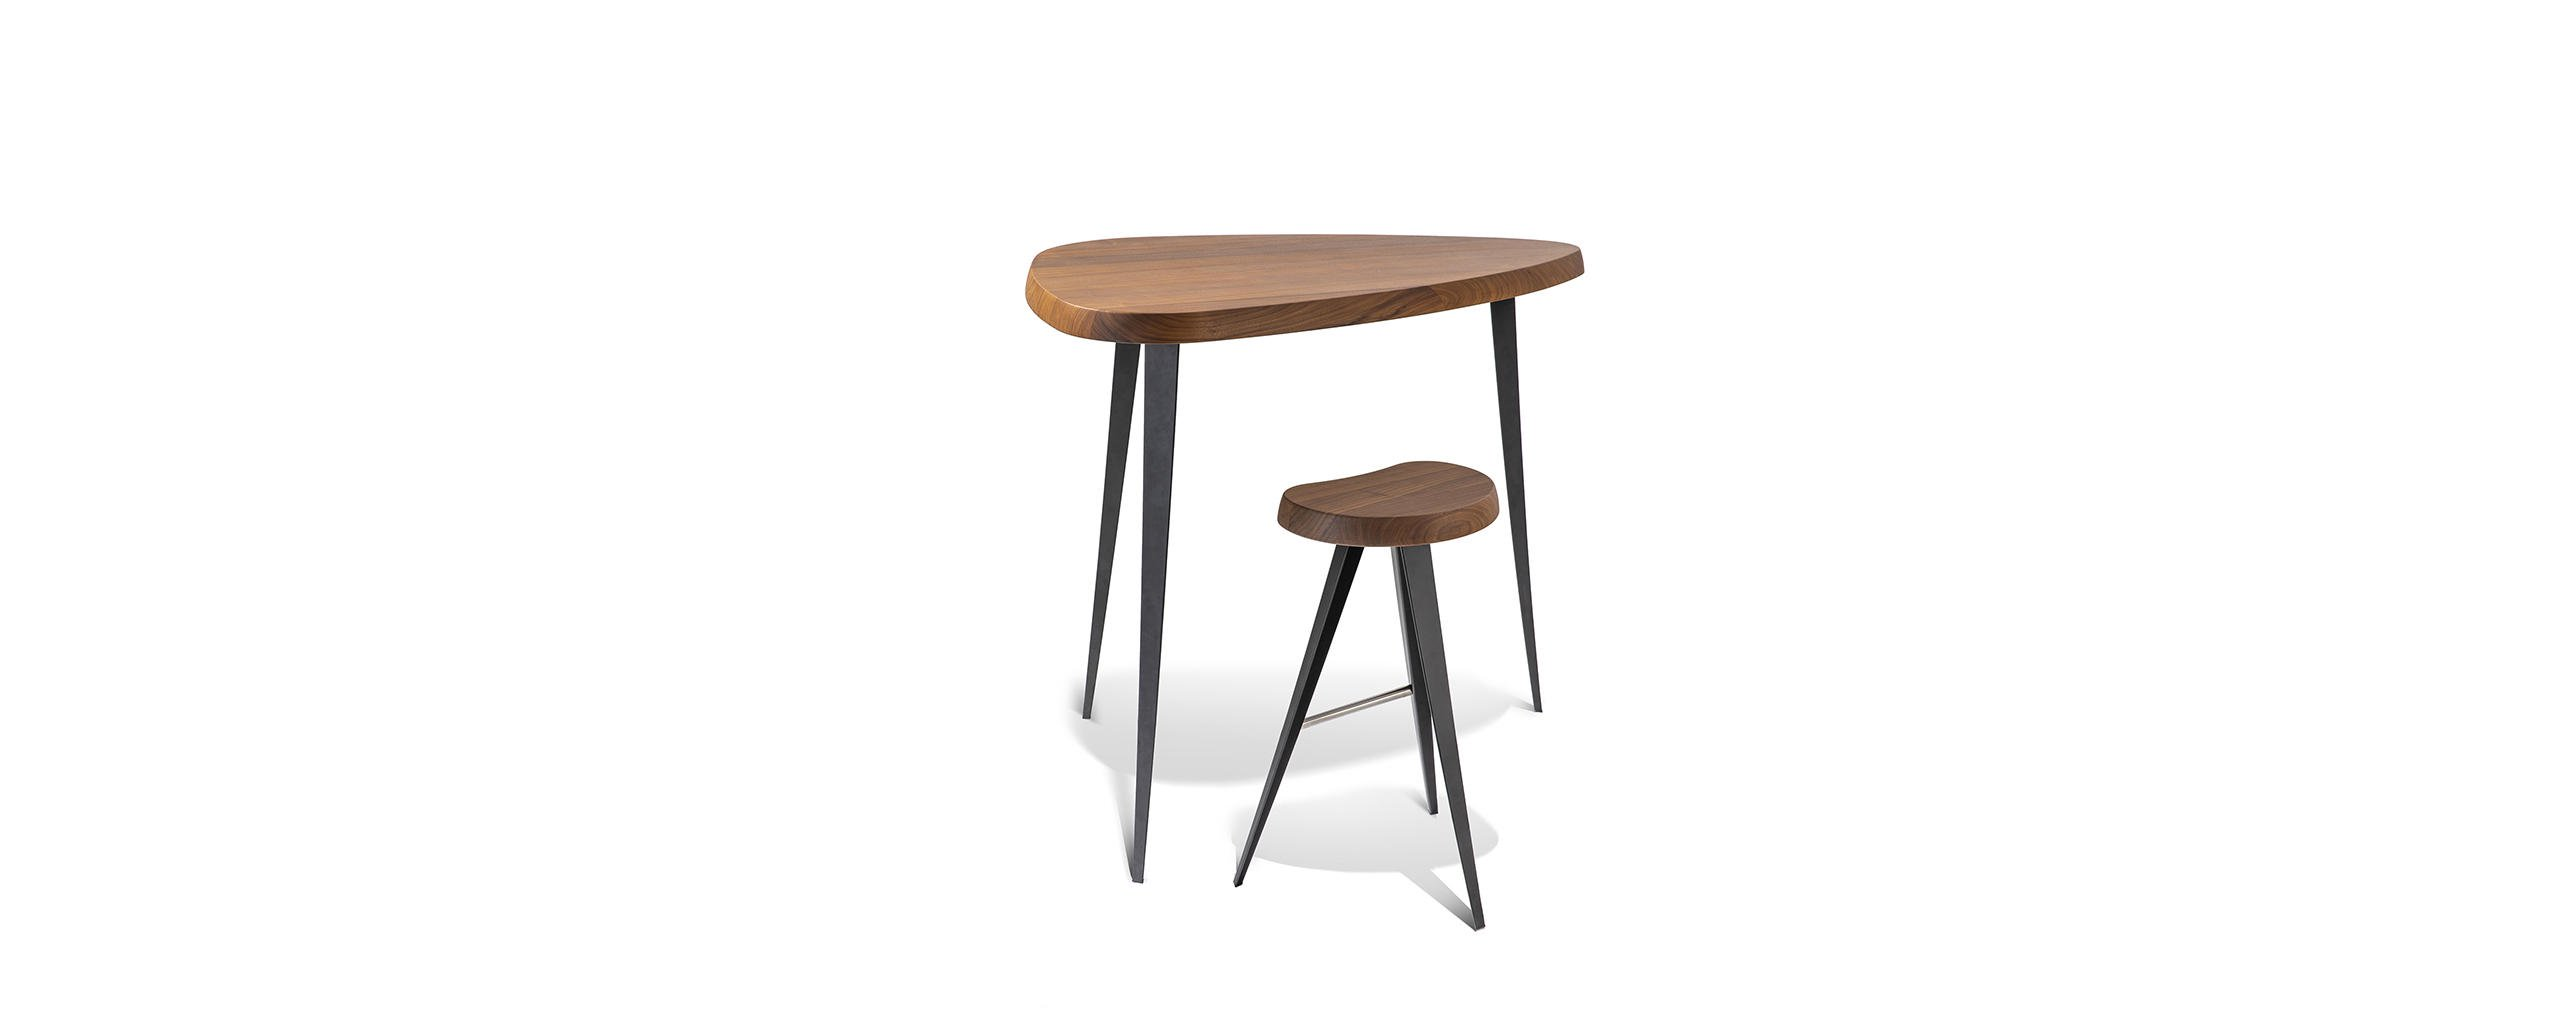 1_cassina_mexique_charlotte_perriand_bar_stool_and_table